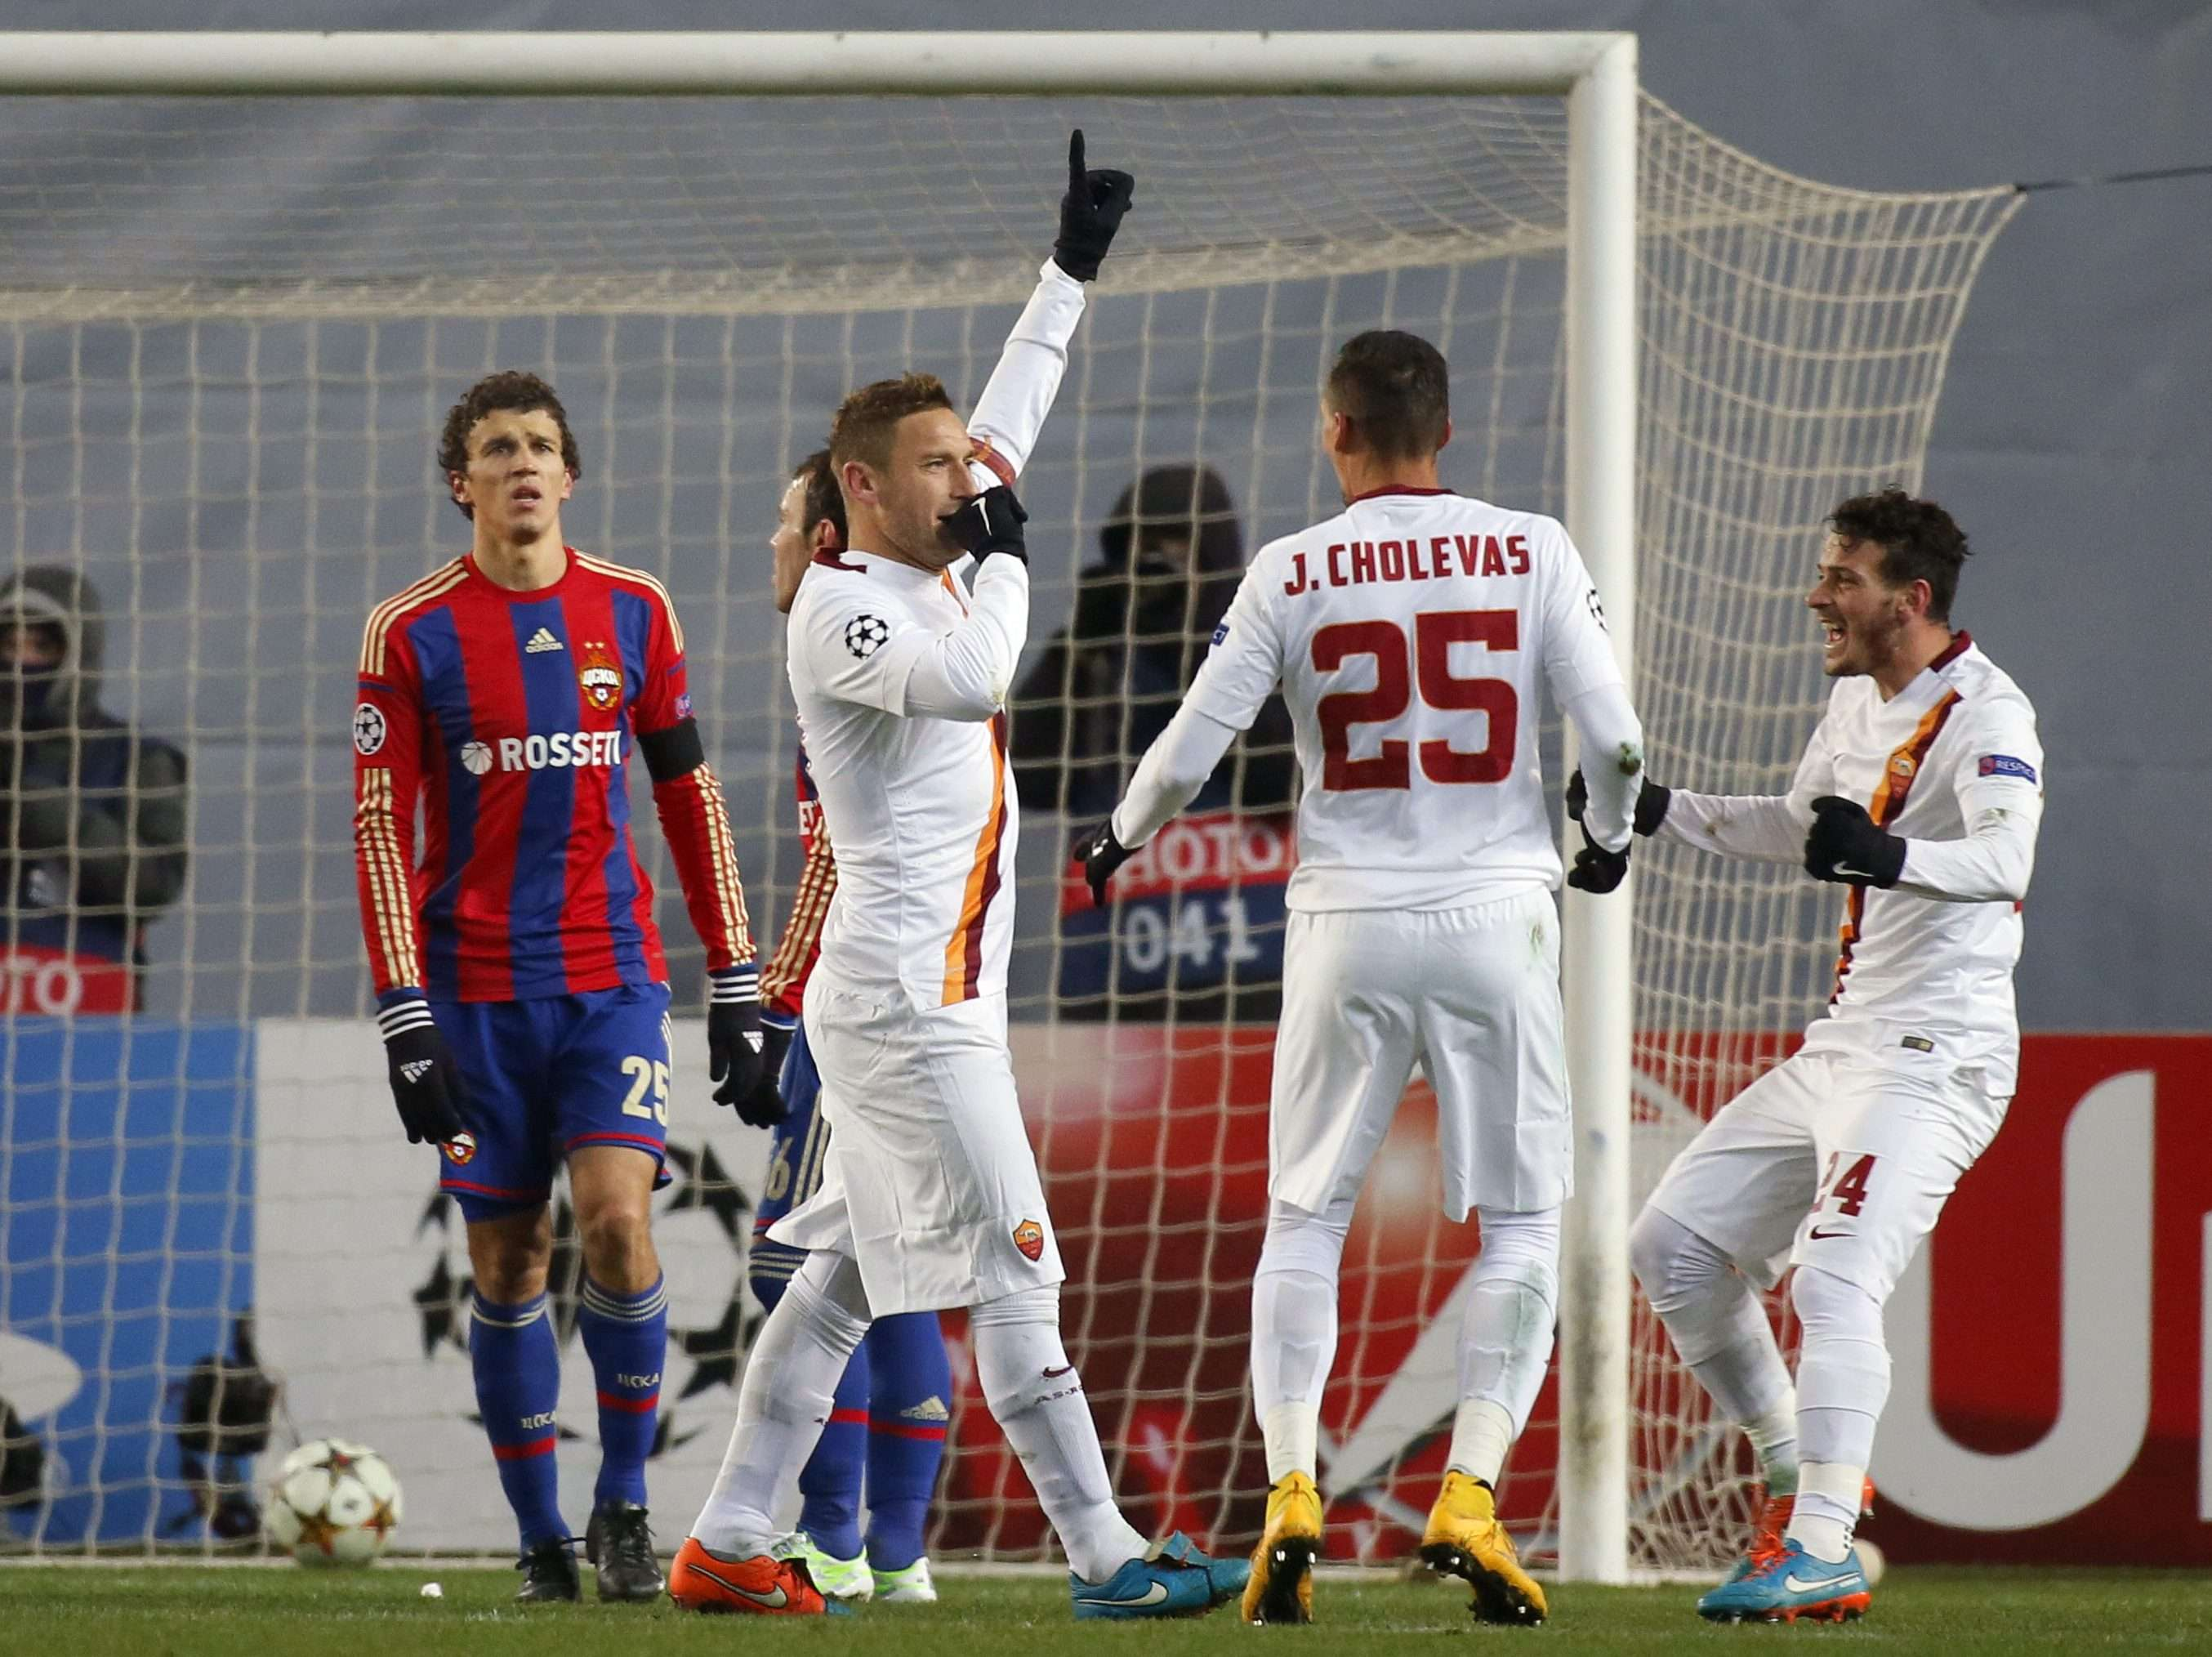 AS Roma's Francesco Totti (2nd L) celebrates after scoring a penalty during their Champions League Group E soccer match against CSKA Moscow at the Arena Khimki stadium outside Moscow, November 25, 2014. REUTERS/Maxim Shemetov (RUSSIA - Tags: SPORT SOCCER) Foto: MAXIM SHEMETOV/REUTERS